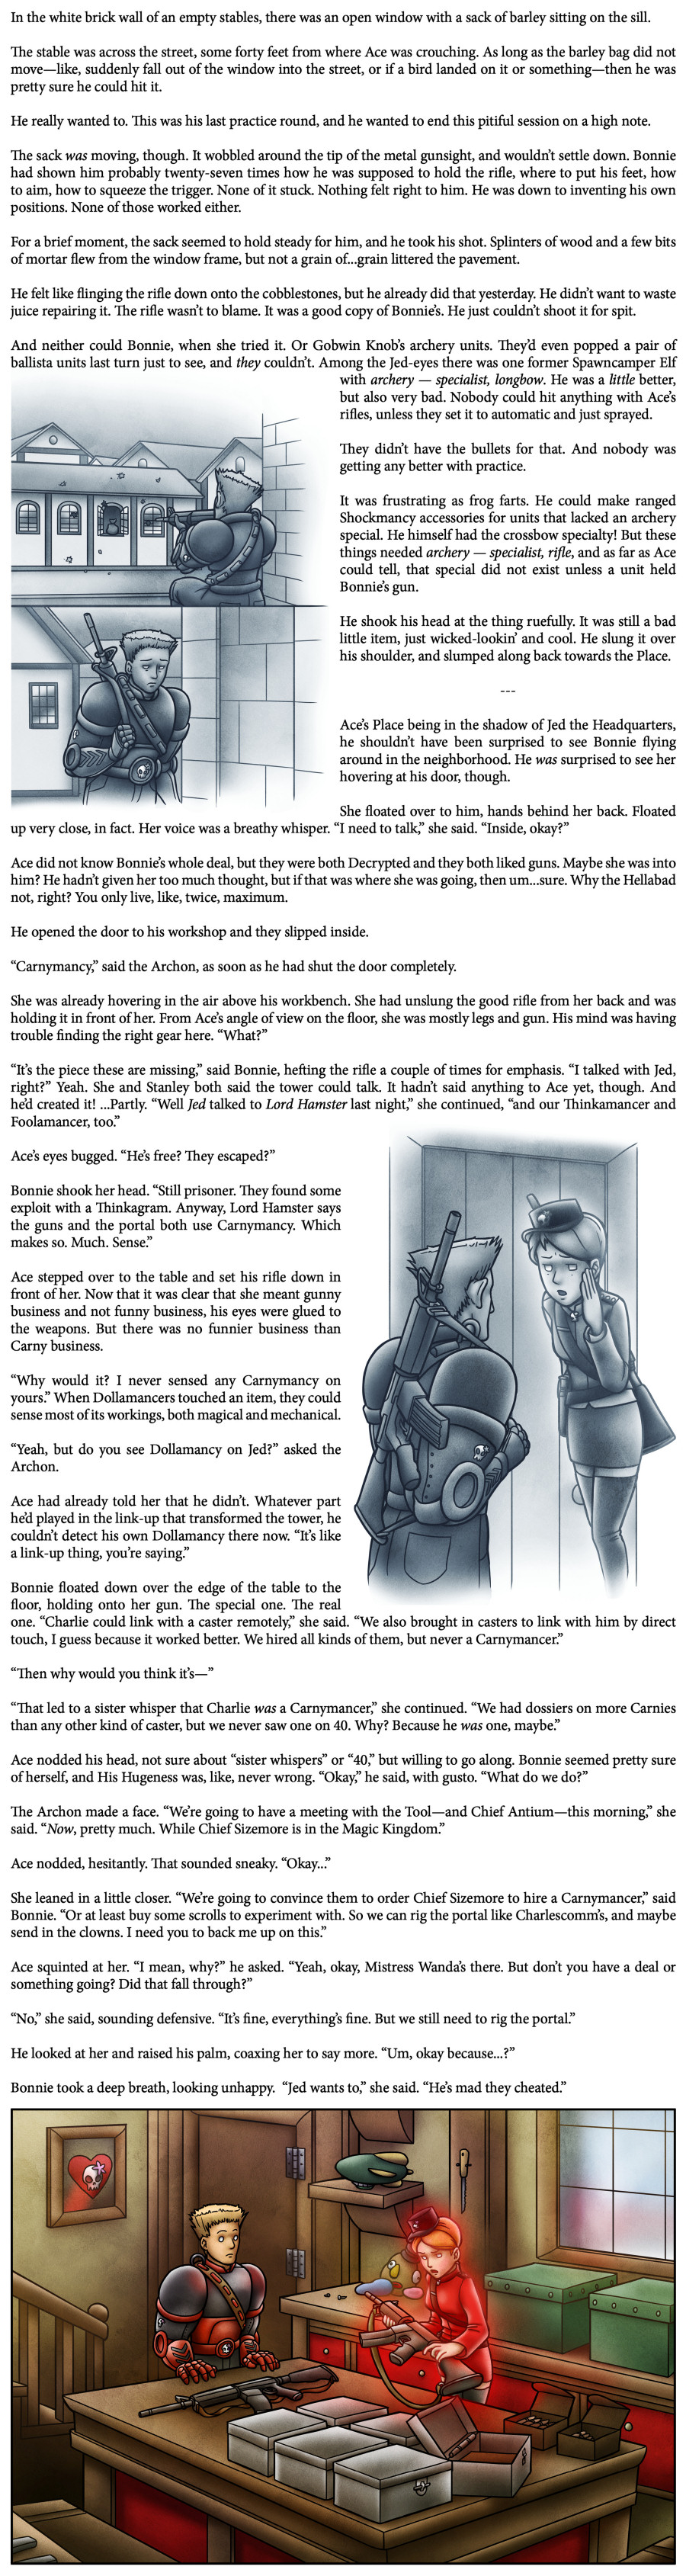 Comic - Book 4 - Page 42